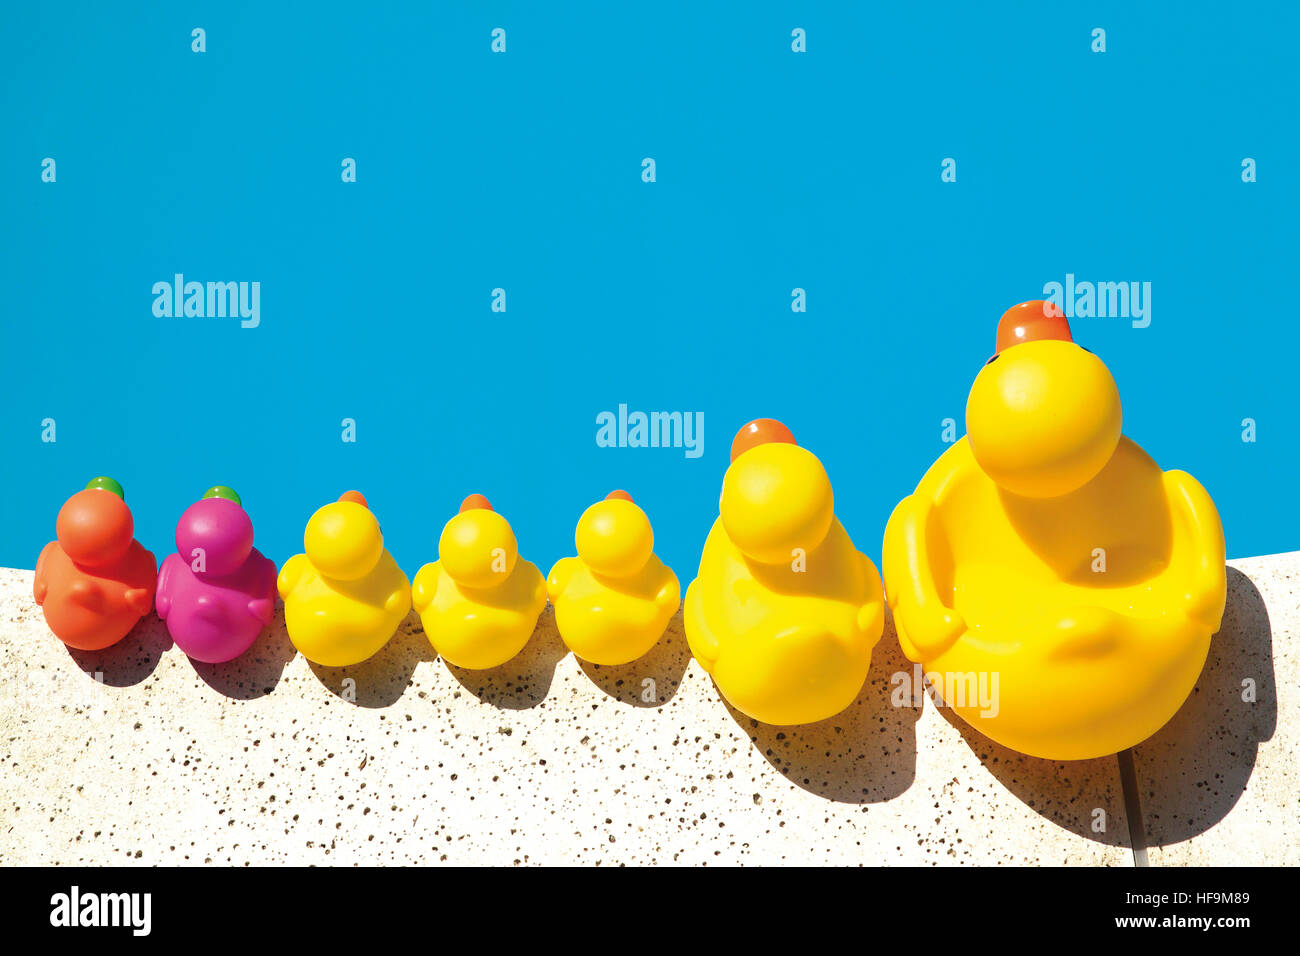 Rubber duckies lined up along the edge of a swimming pool - Stock Image